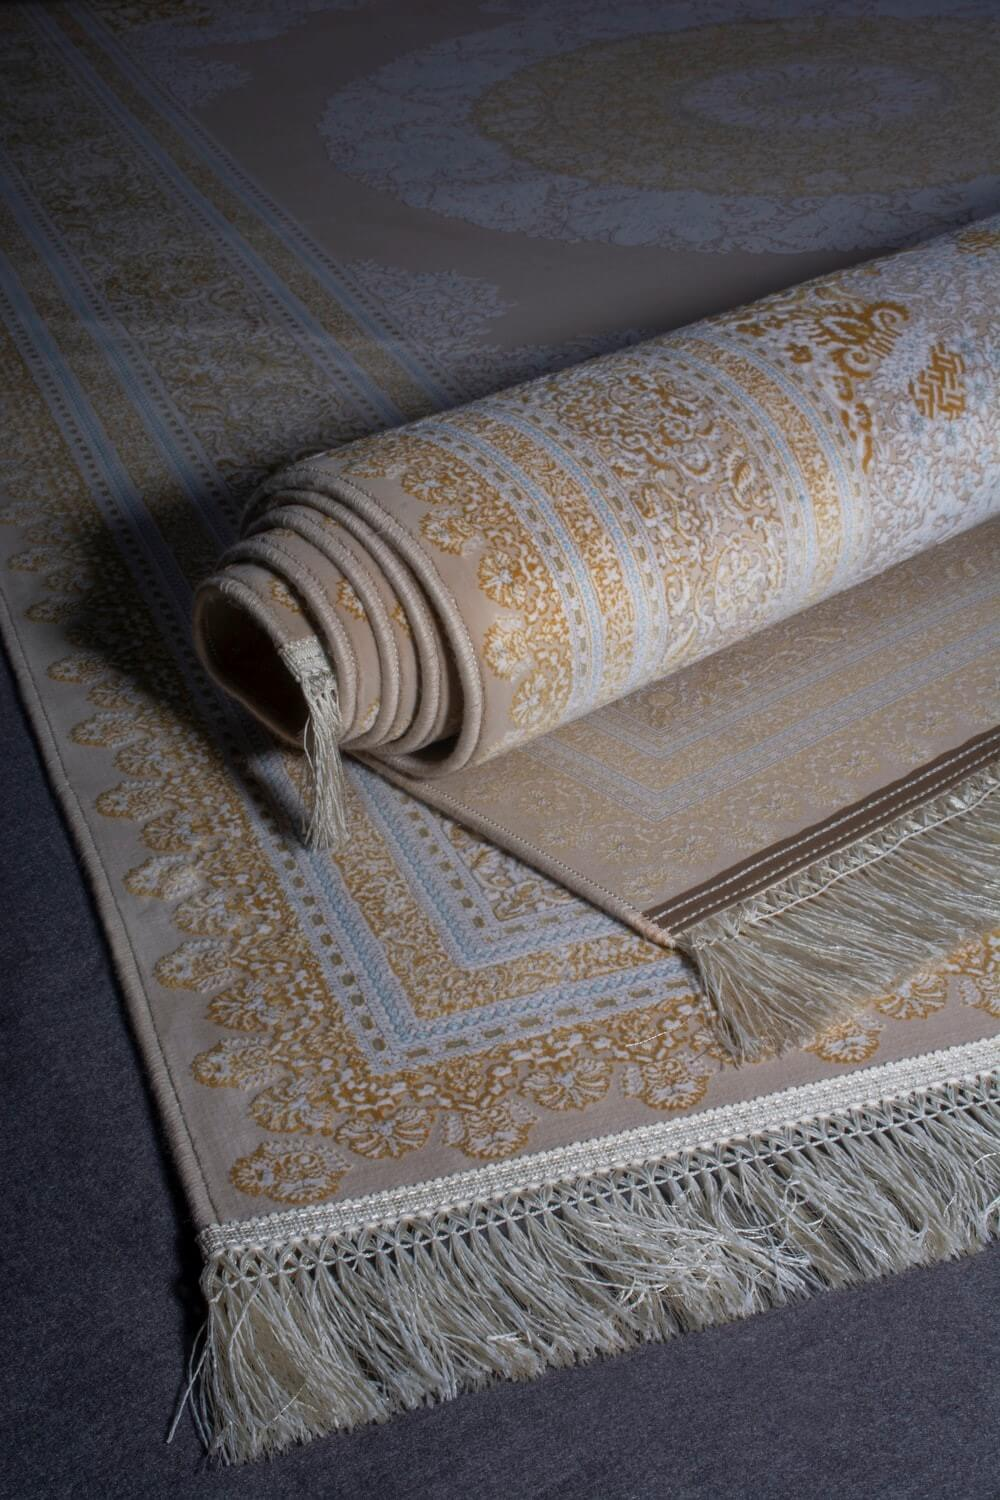 Types of Rugs and Weaving Techniques